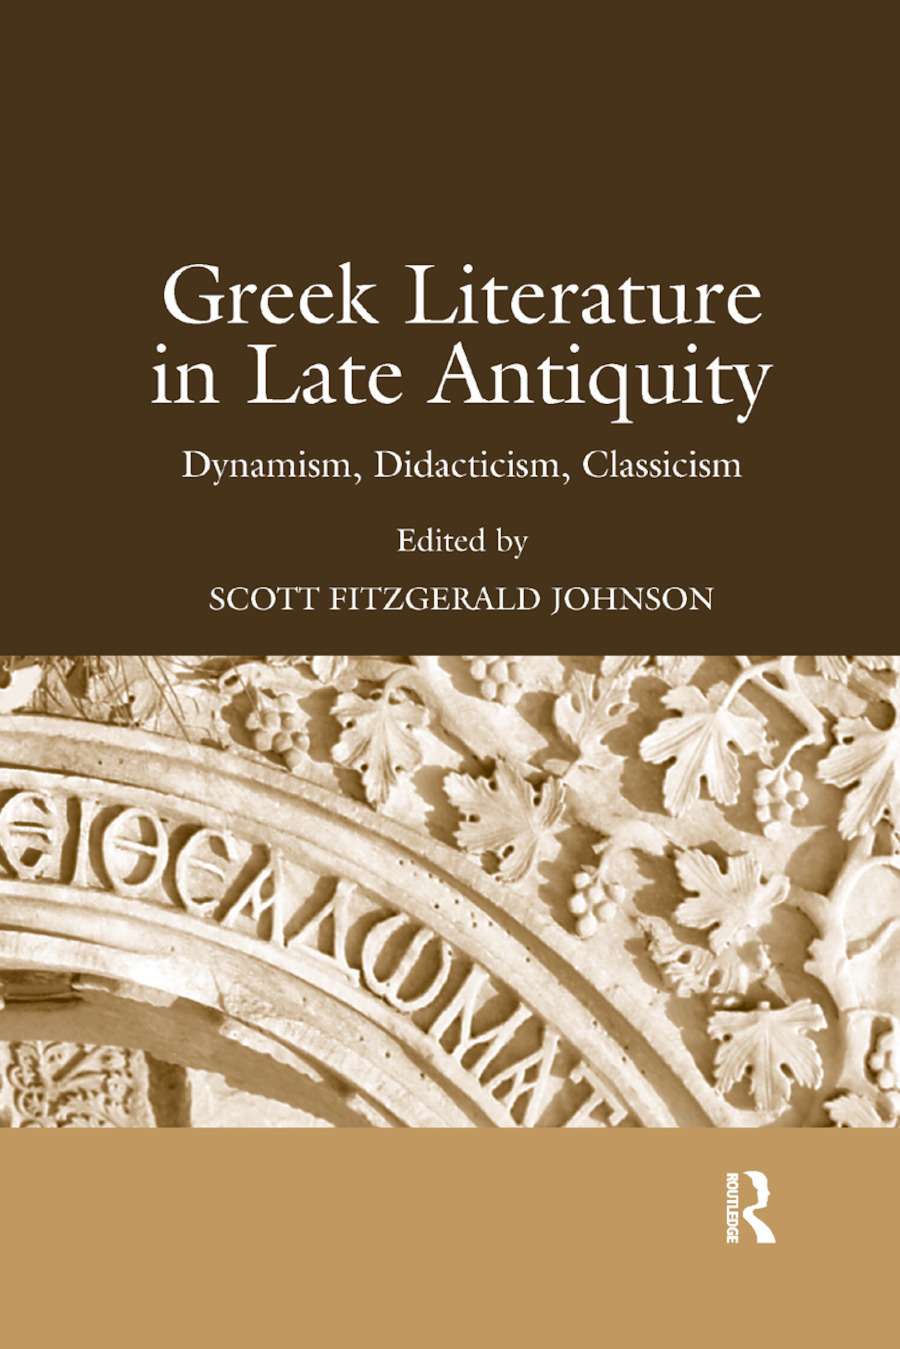 Greek Literature in Late Antiquity: Dynamism, Didacticism, Classicism, 1st Edition (Paperback) book cover